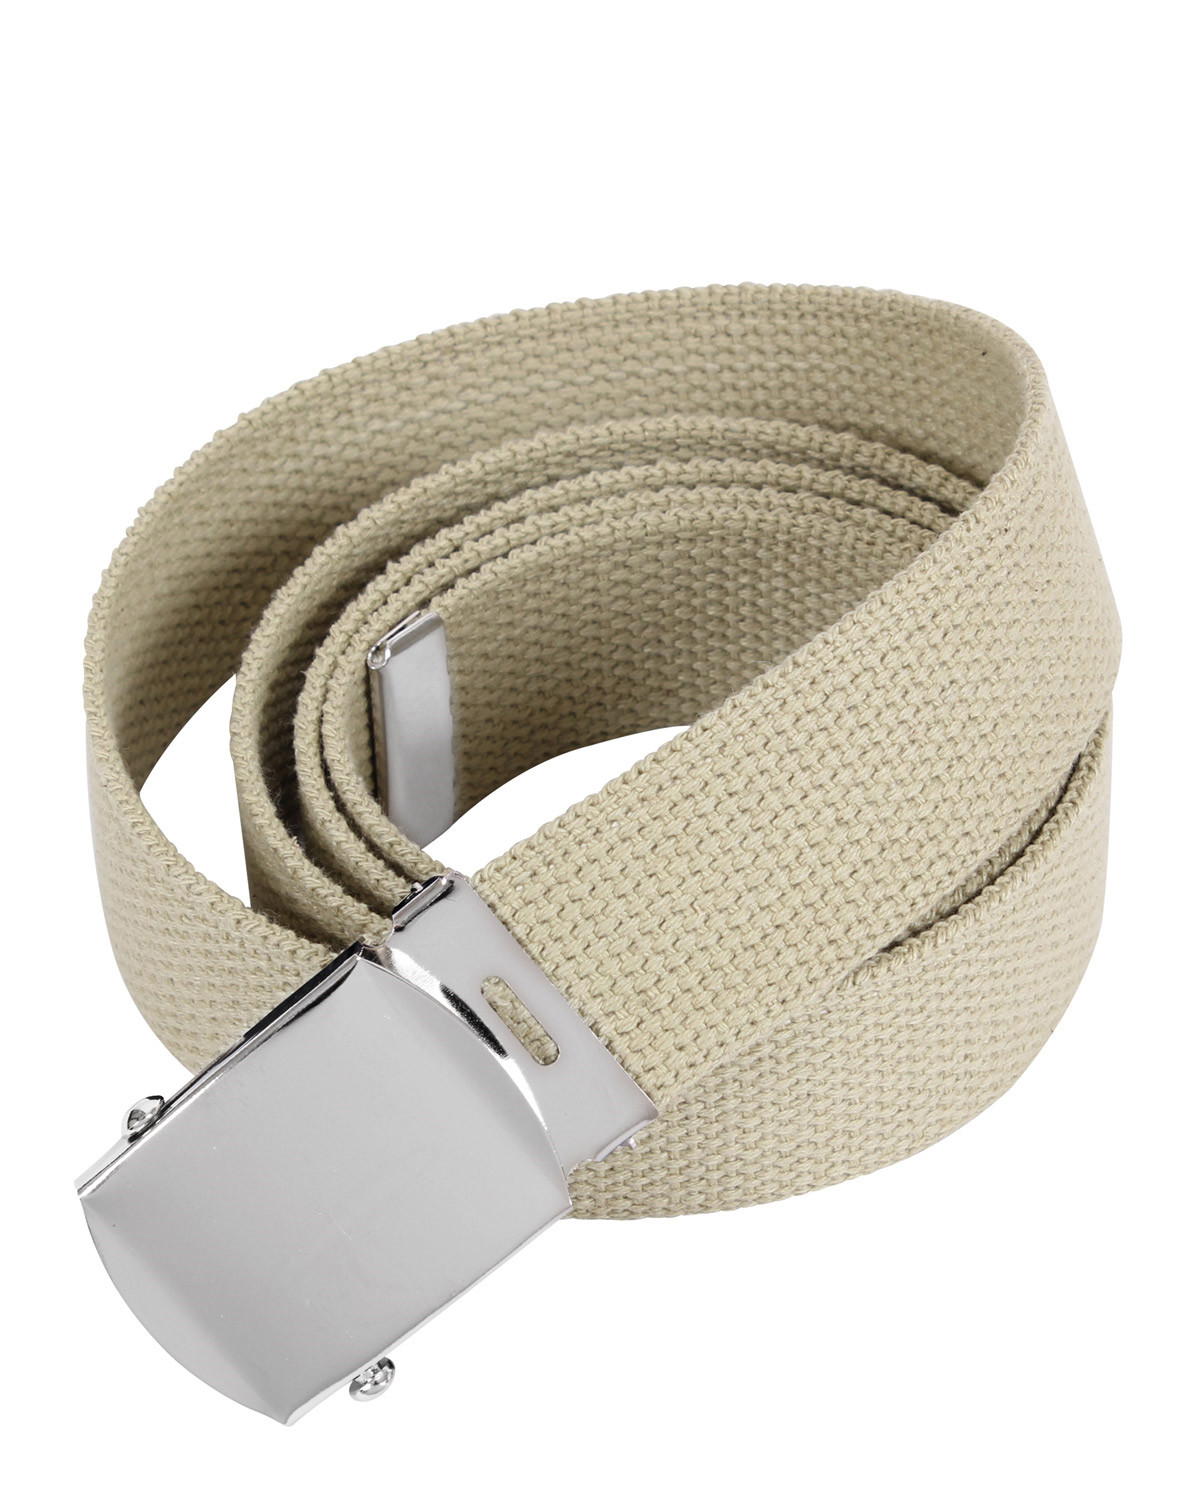 Rothco Military Bälte - 135 cm (Khaki w. Chrome Buckle, One Size)